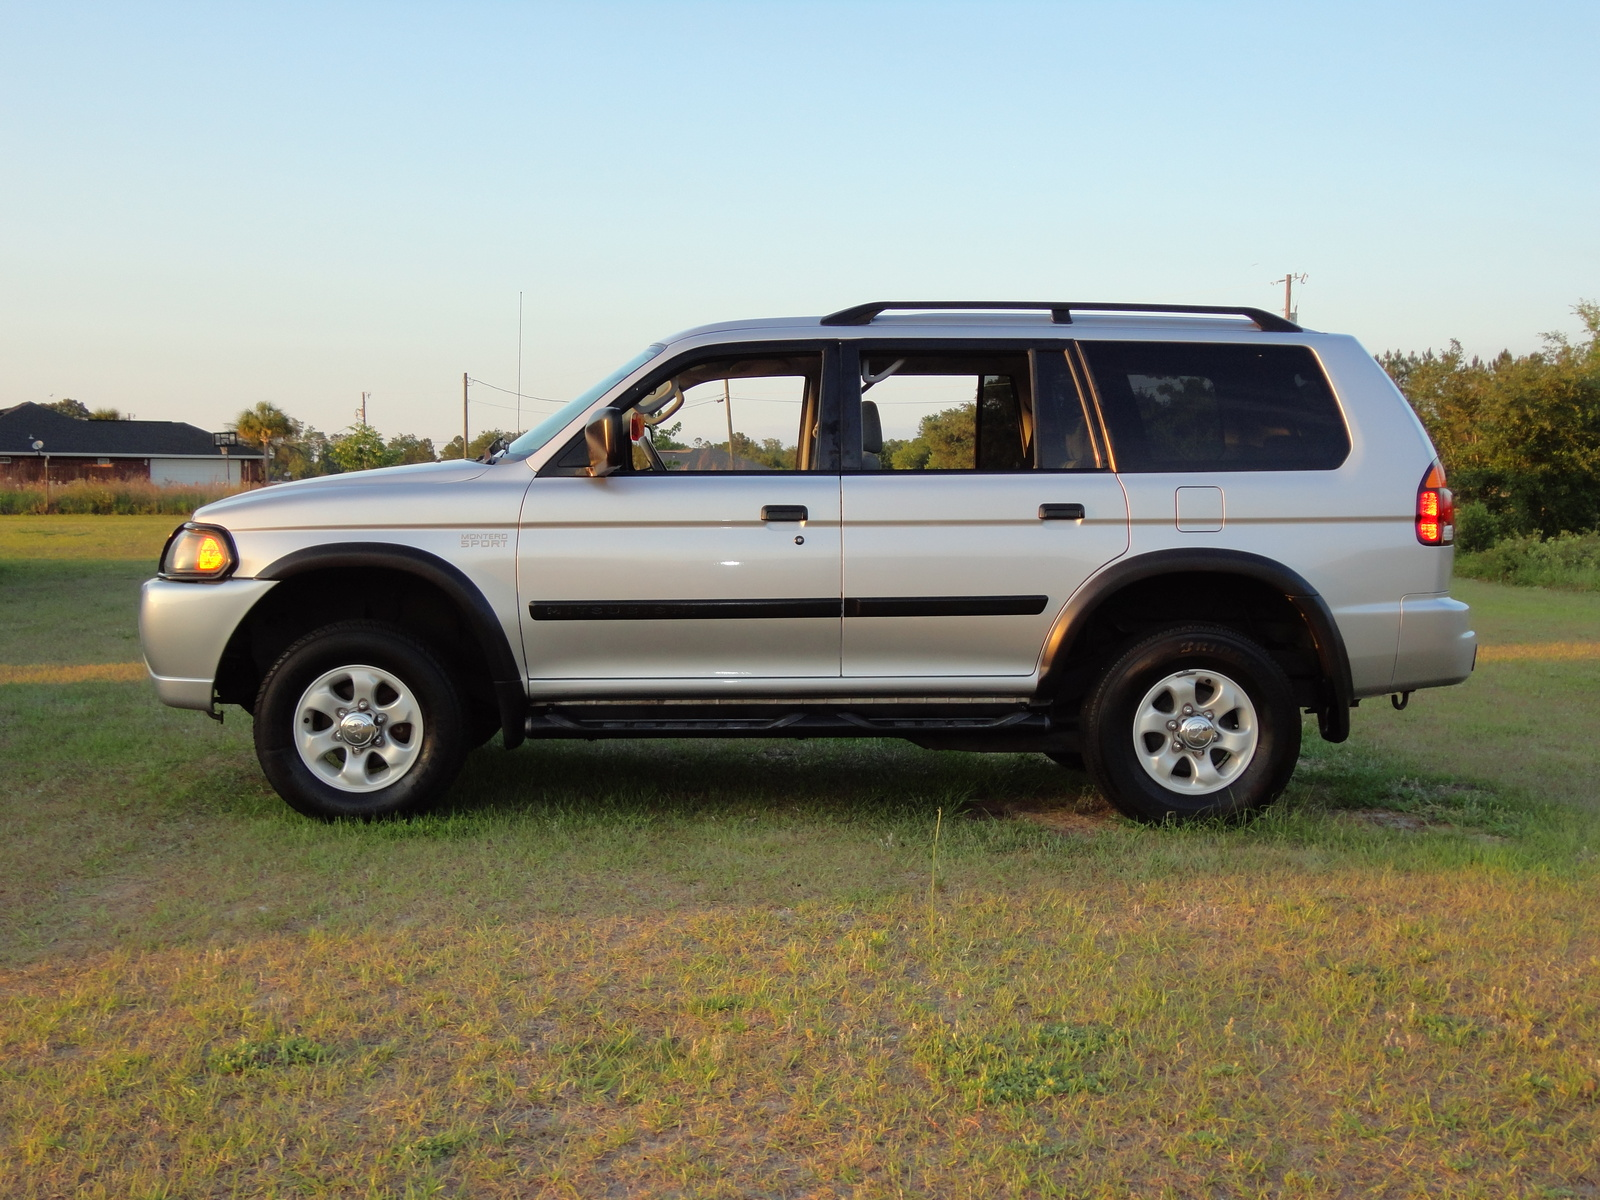 picture of 2003 mitsubishi montero sport es exterior_cce64?resize\=665%2C499 cce wiring diagram friendship bracelet diagrams, lighting cce switch box wiring diagram at cos-gaming.co